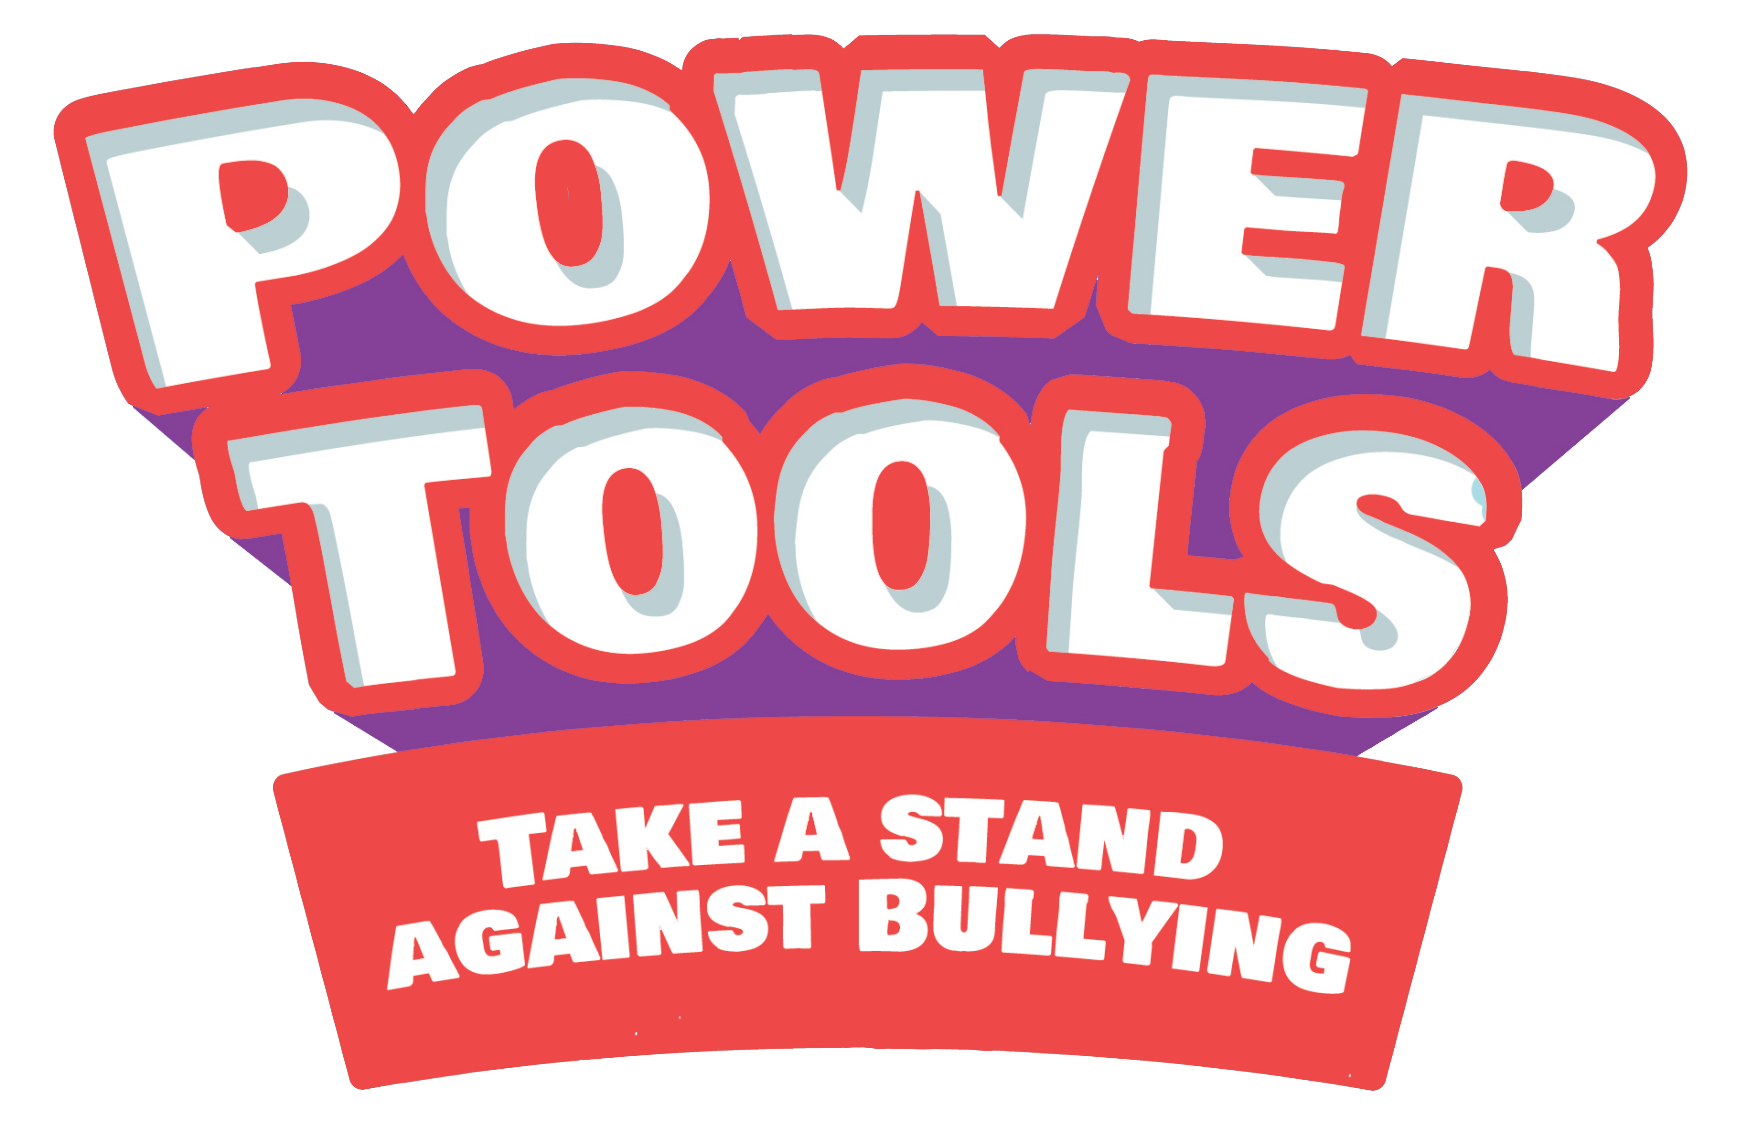 kc-power-tools-take-a-stand-against-bullying-graphic